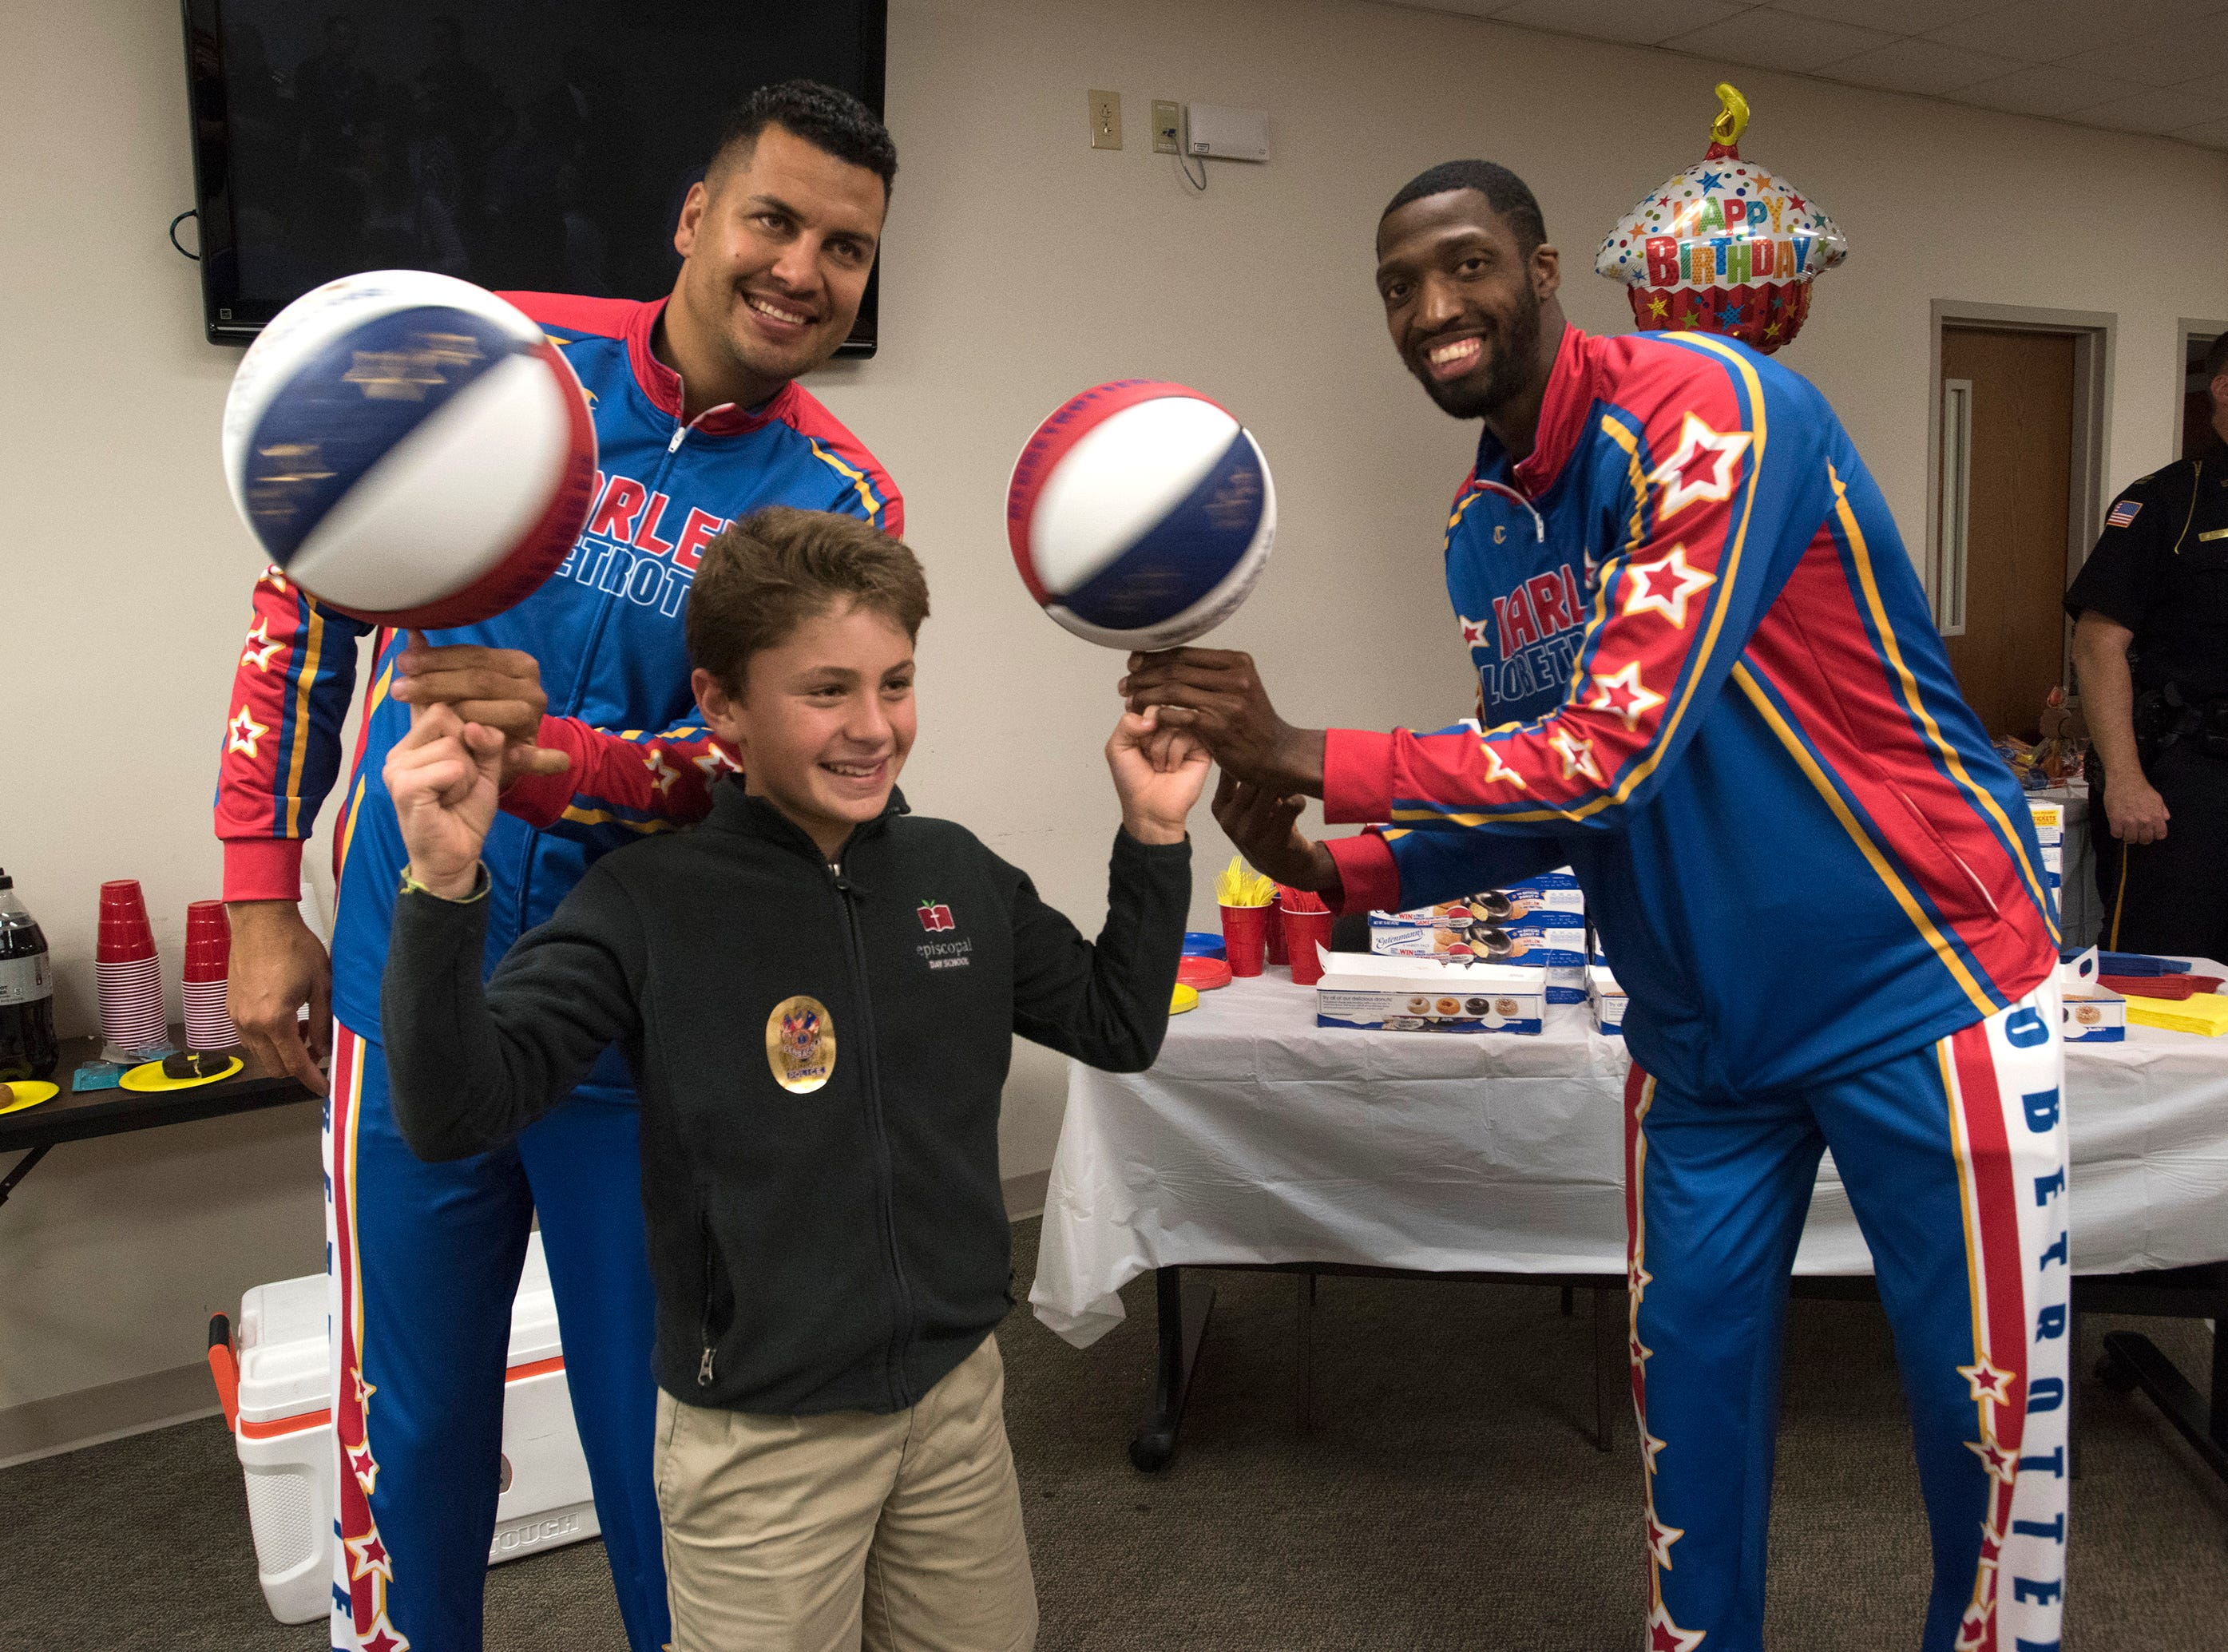 El Gato Melendez, and Bulldog Mack, two members of the Harlem Globetrotters, teach Chad Bonner a few tricks during their visit to the Pensacola Police Department on Wednesday, Nov. 7, 2018.